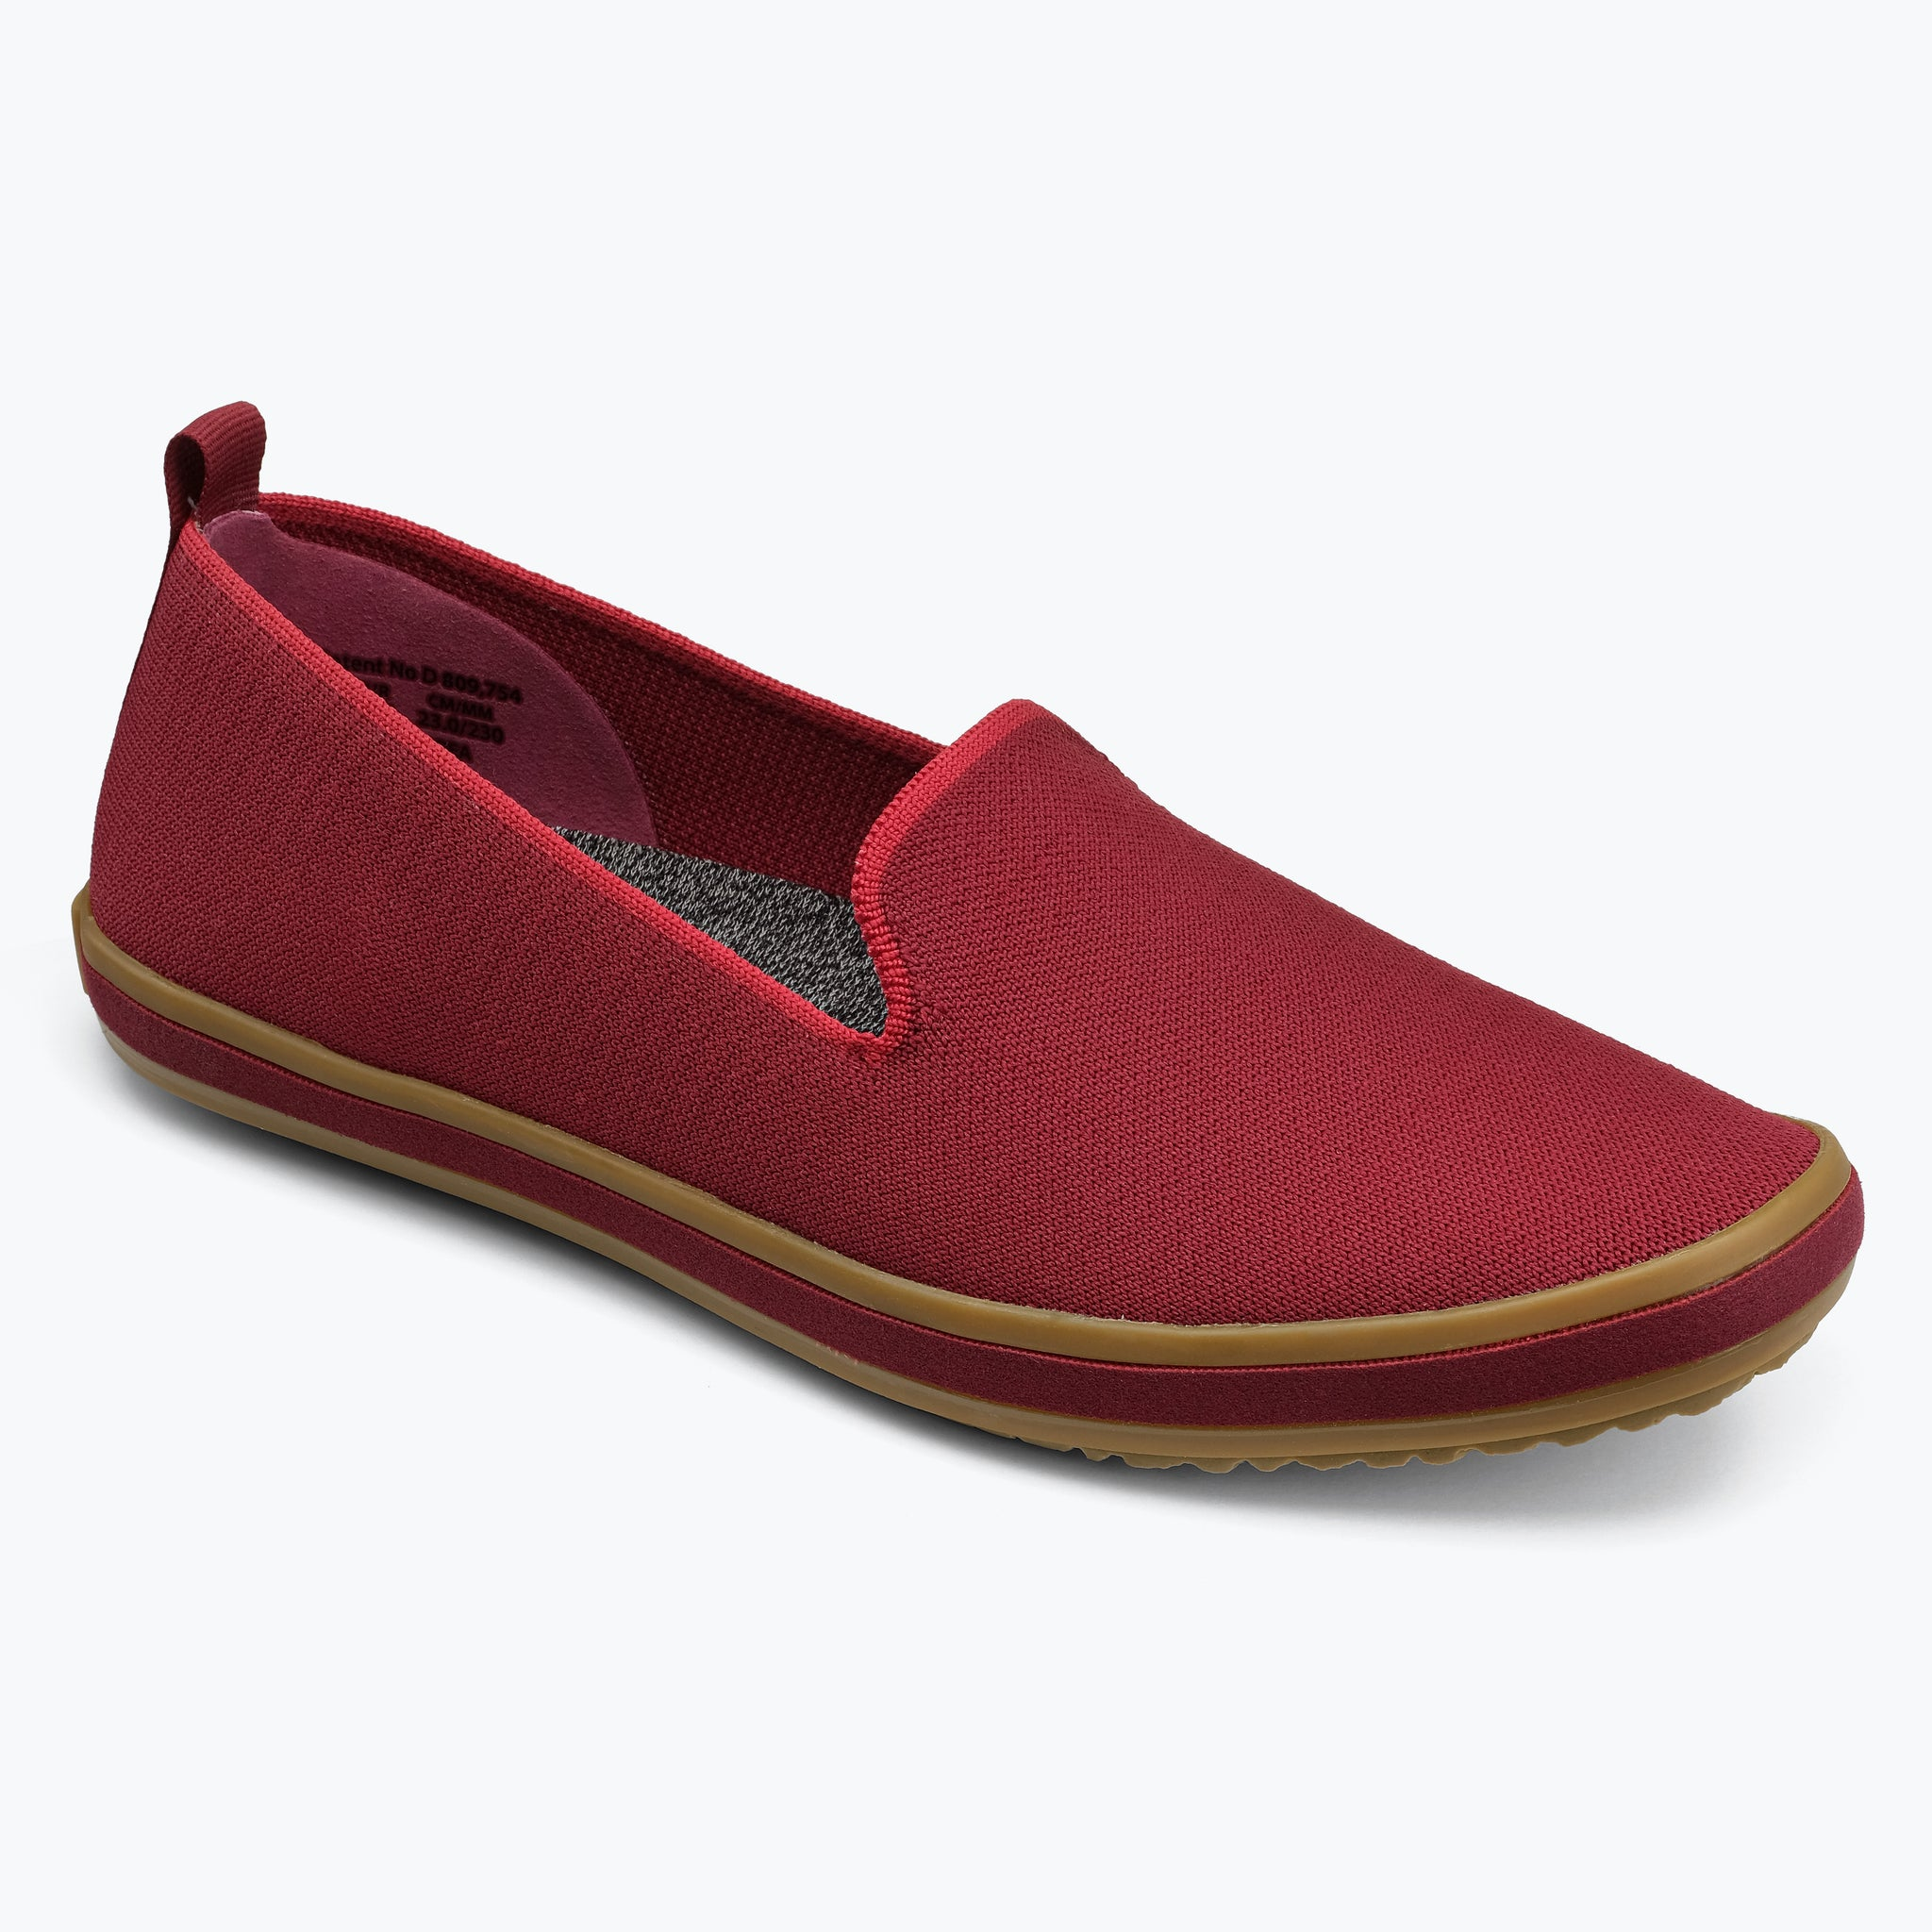 Sutton Knit Slip On - Carmine